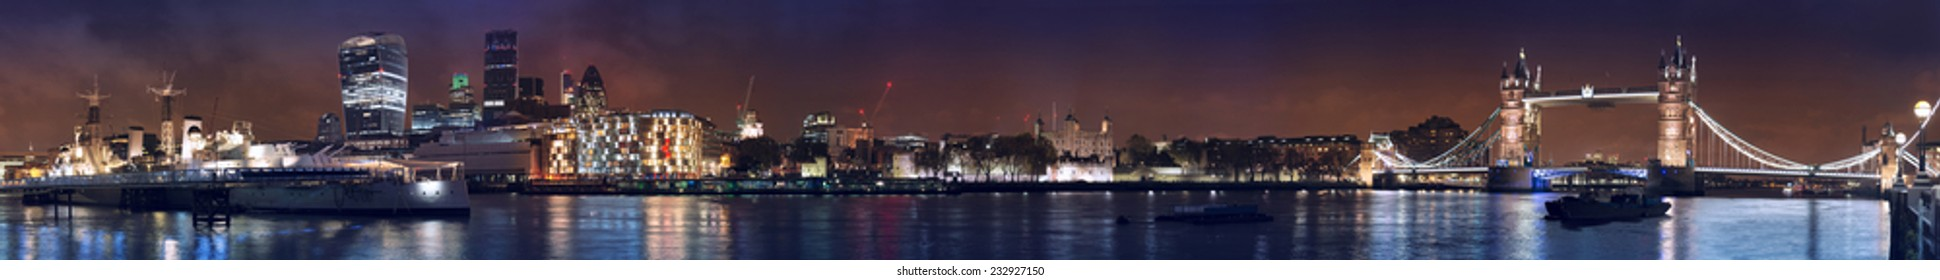 Very wide night panorama of London Tower bridge, Tower, financial City district and HMS Belfast warship museum.